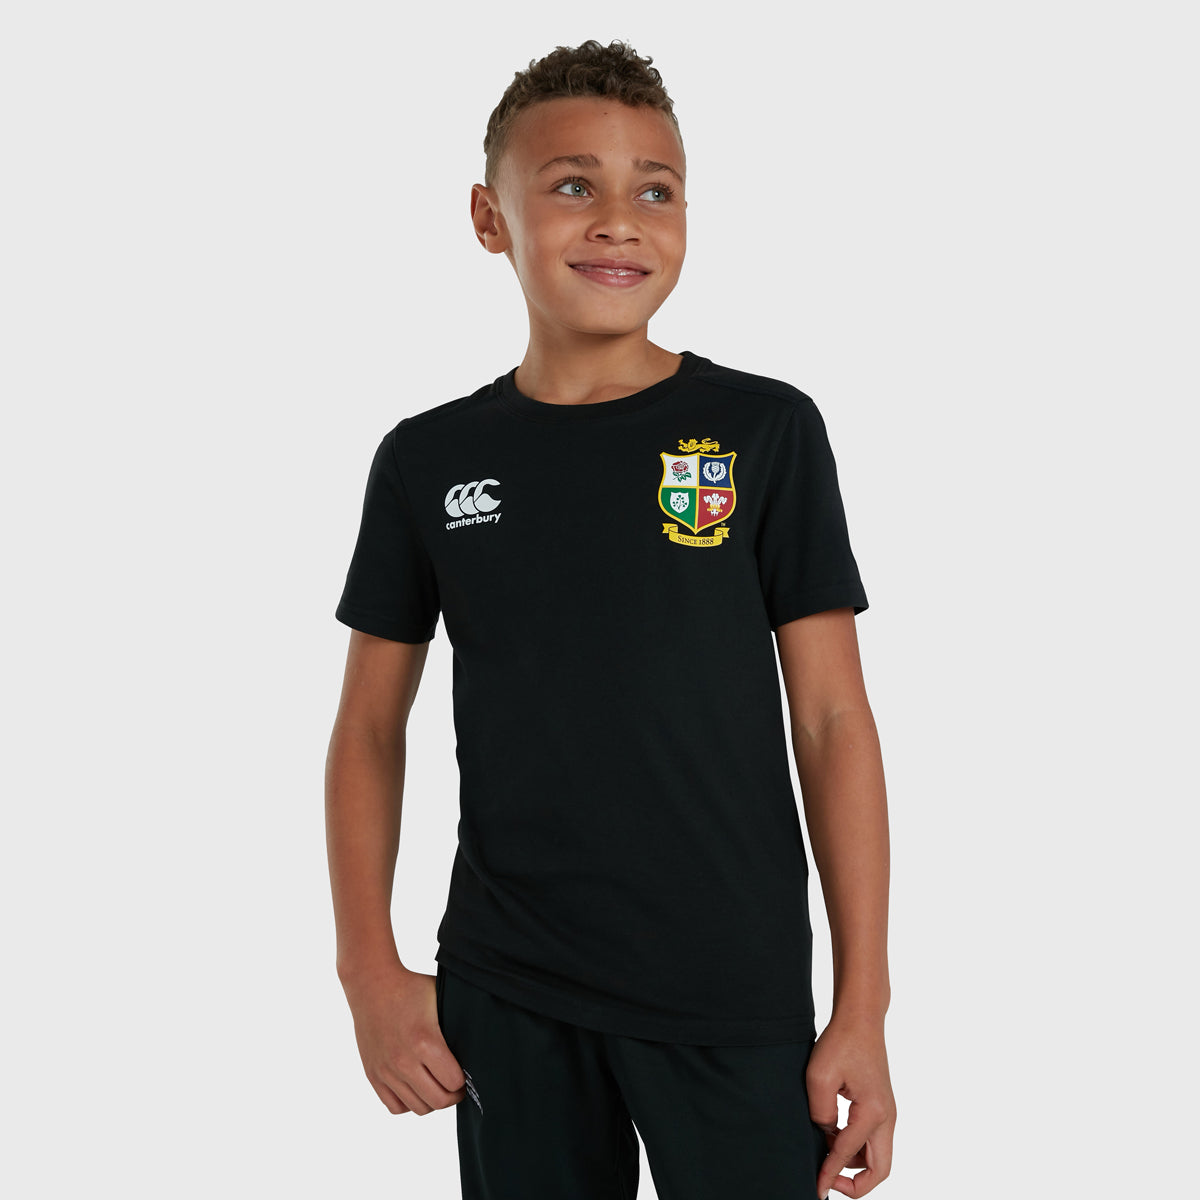 British & Irish Lions SA 2021 Kid's Cotton Tee Black